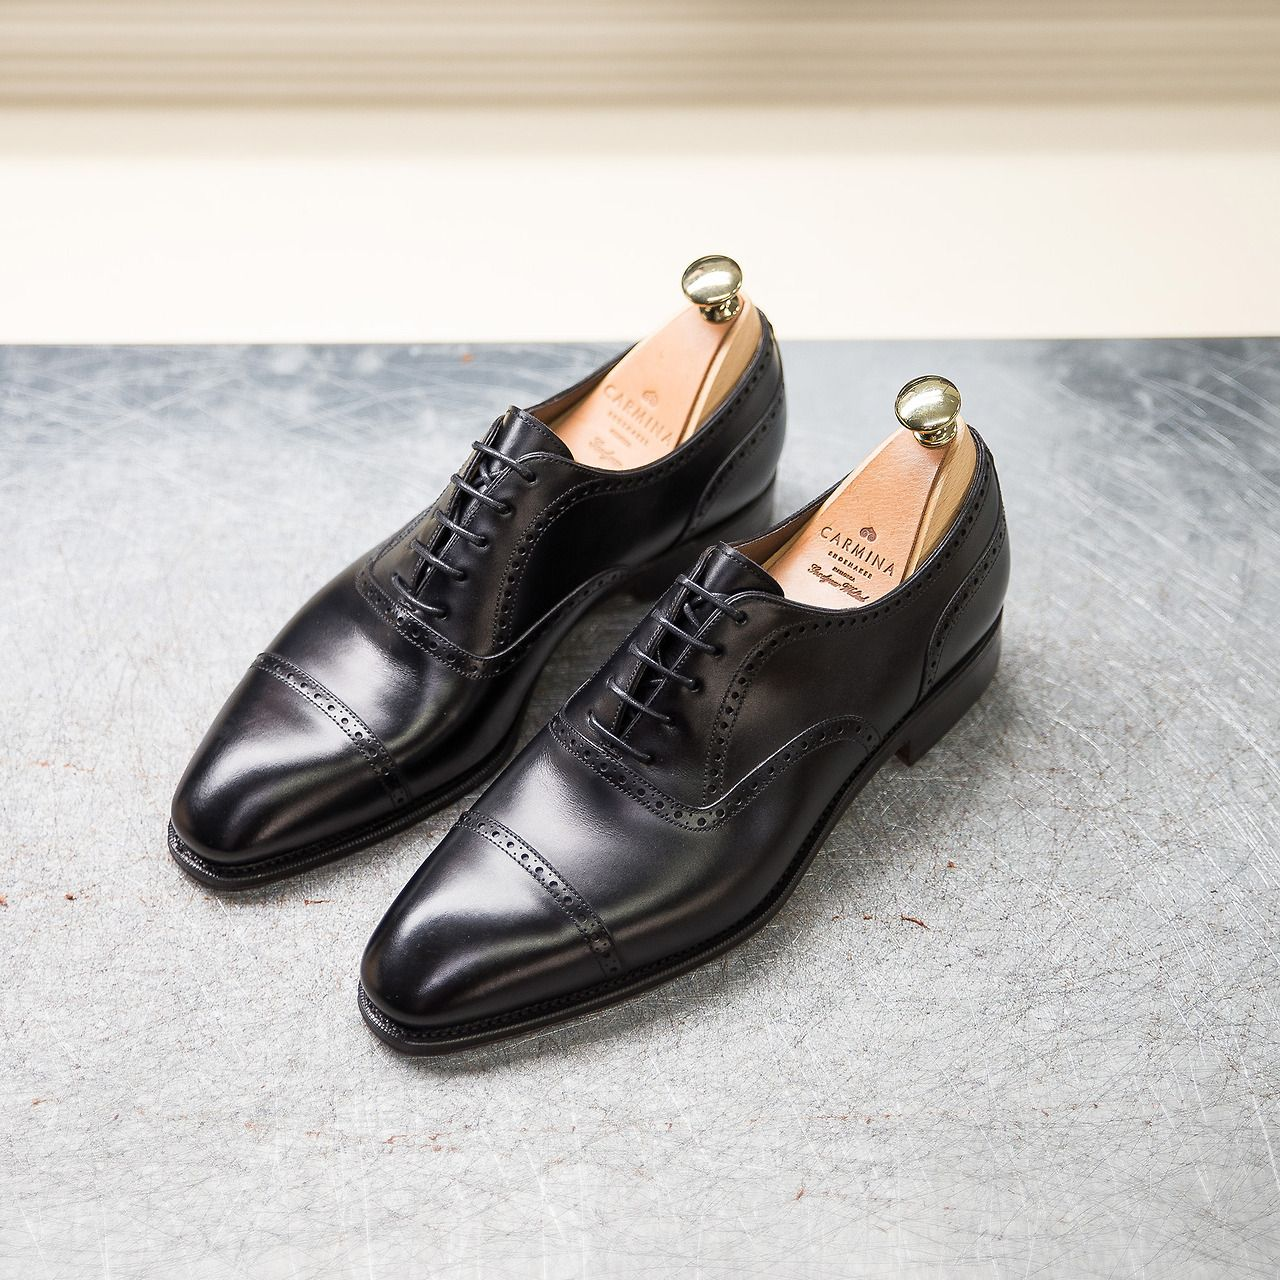 Carmina Shoemaker Discover Our Collection Of Black Dress Shoes Black Dress Shoes Shoes Dress Shoes Men [ 1280 x 1280 Pixel ]